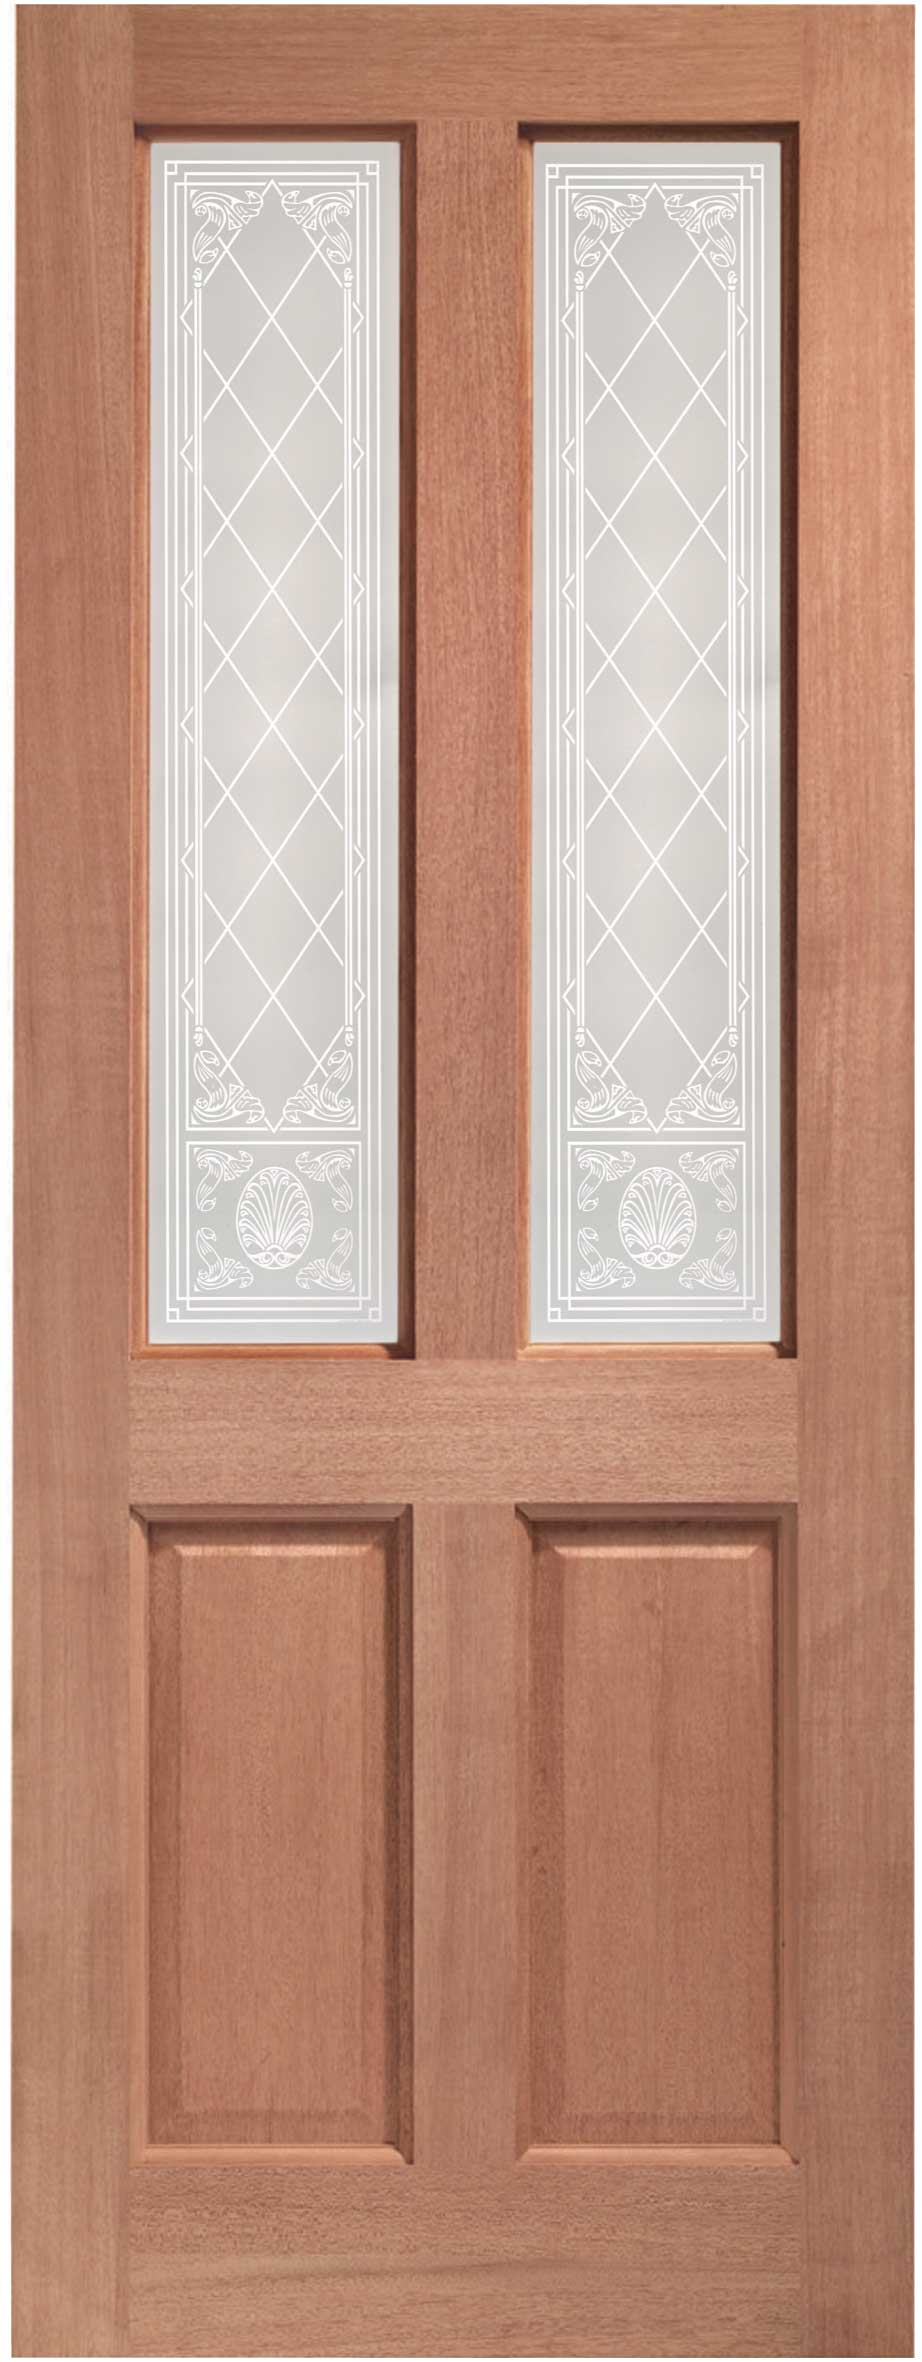 Malton glazed hardwood external doors for External hardwood doors